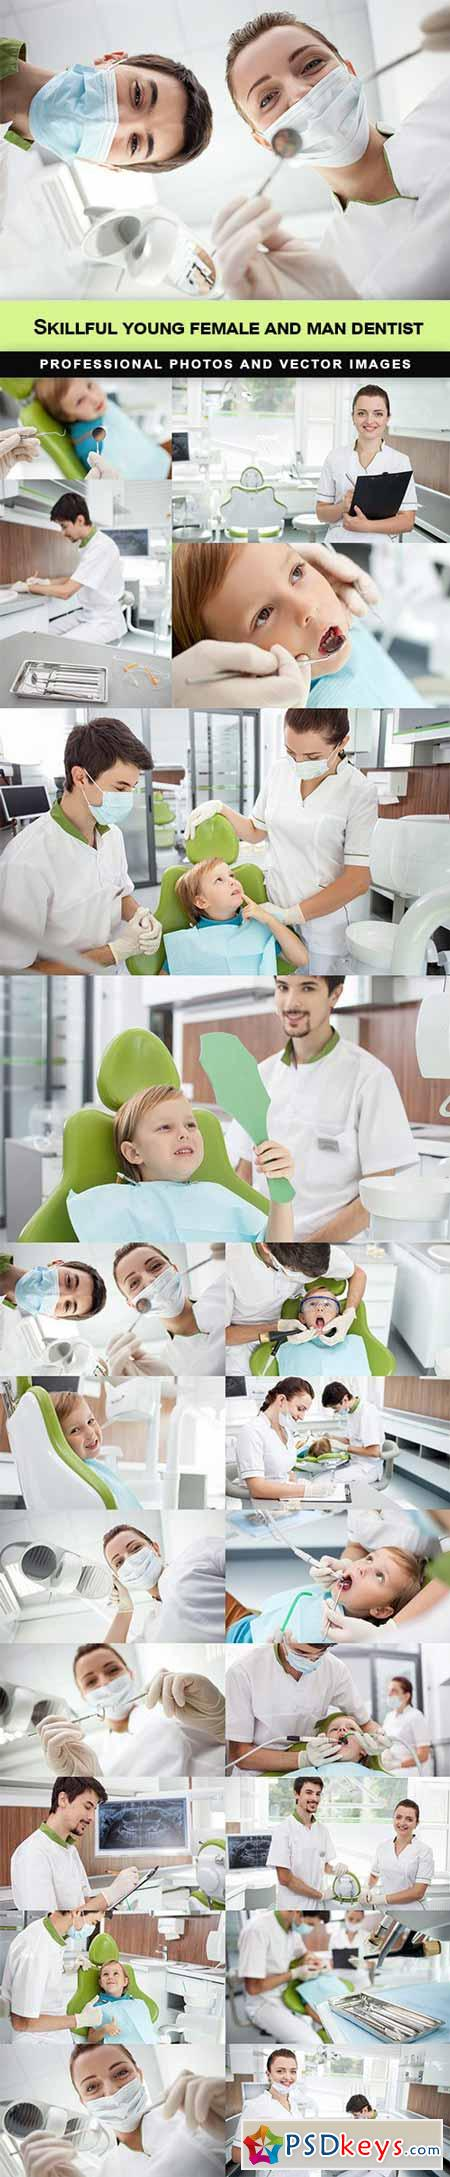 Skillful young female and man dentist - 20 UHQ JPEG